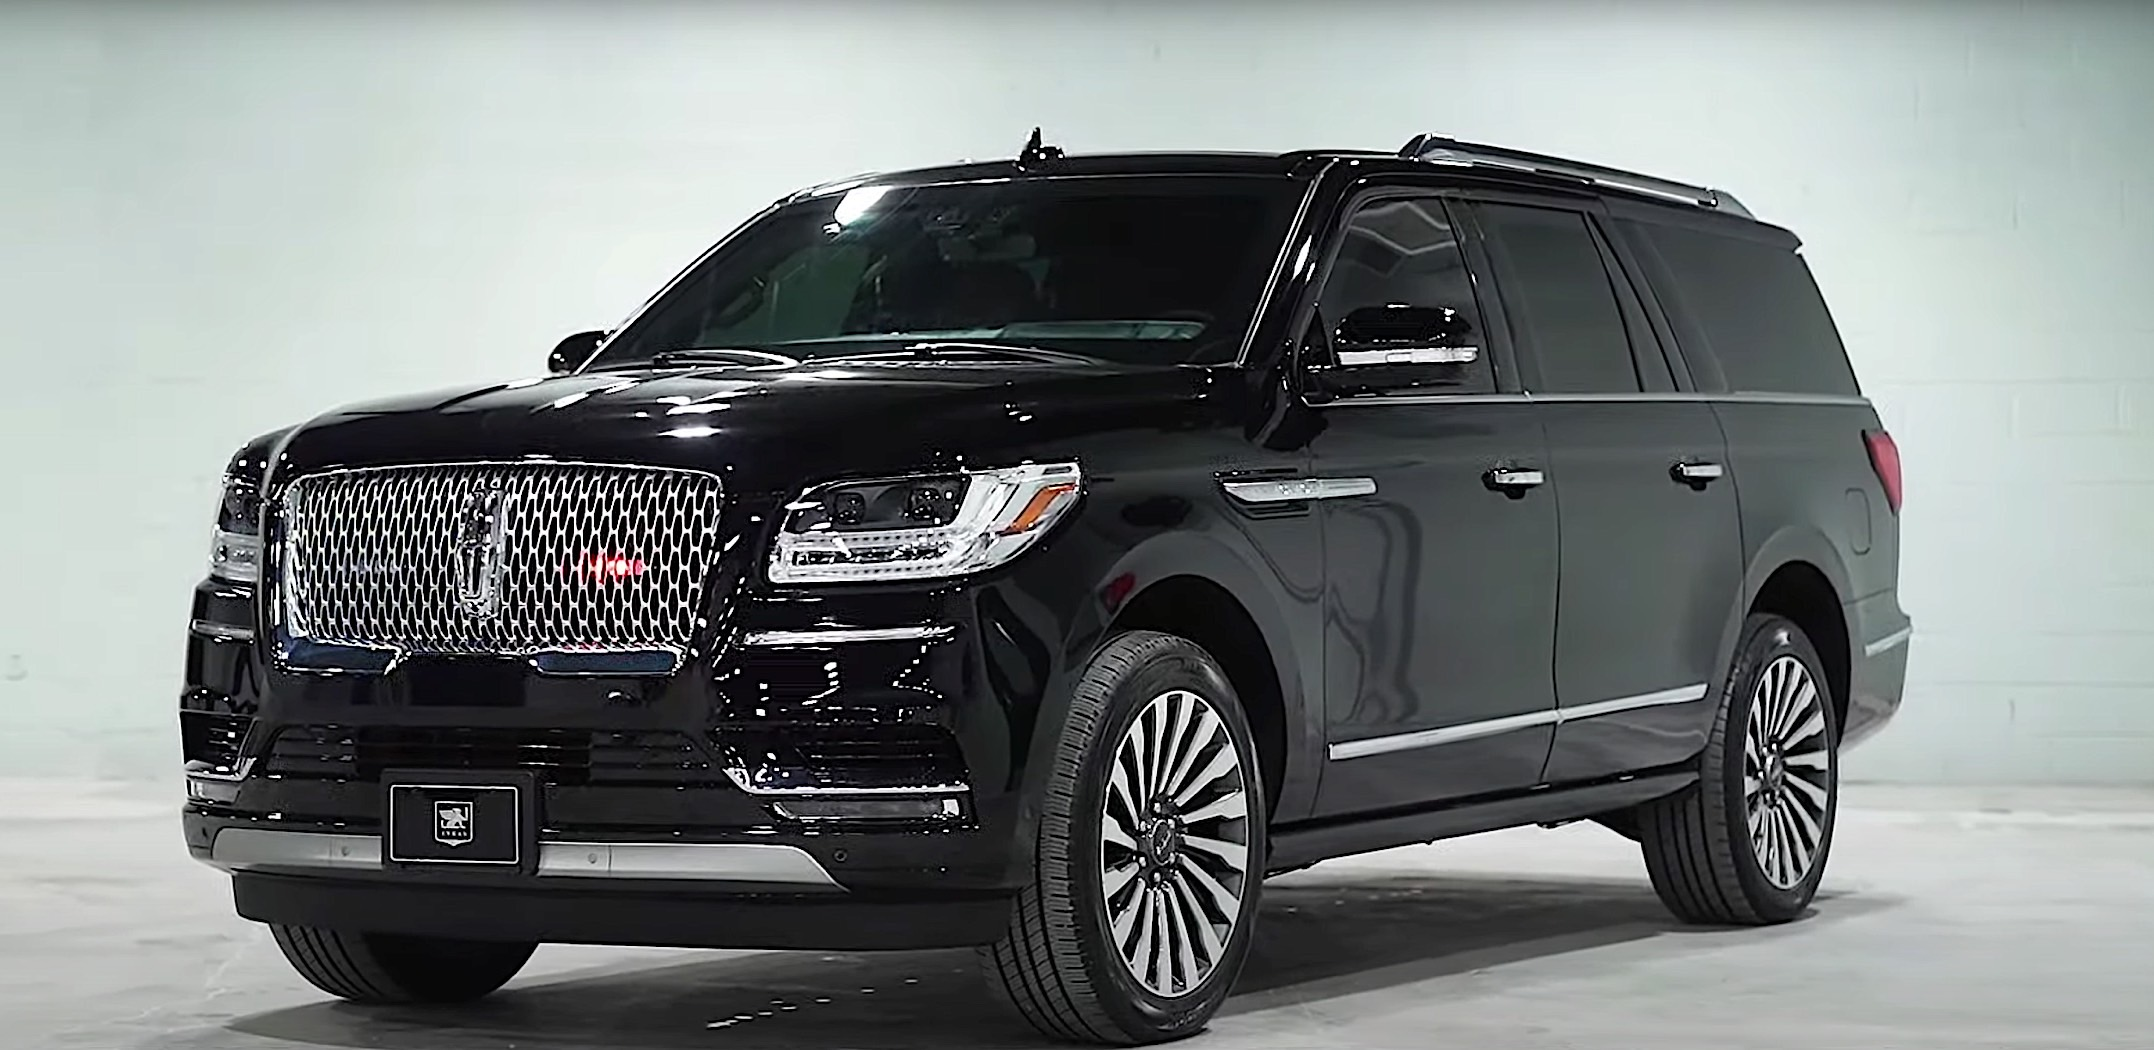 This 2020 Lincoln Navigator Inkas Armored Luxury Suv Can Withstand 2 Hand Grenades Explosion Autoreportng